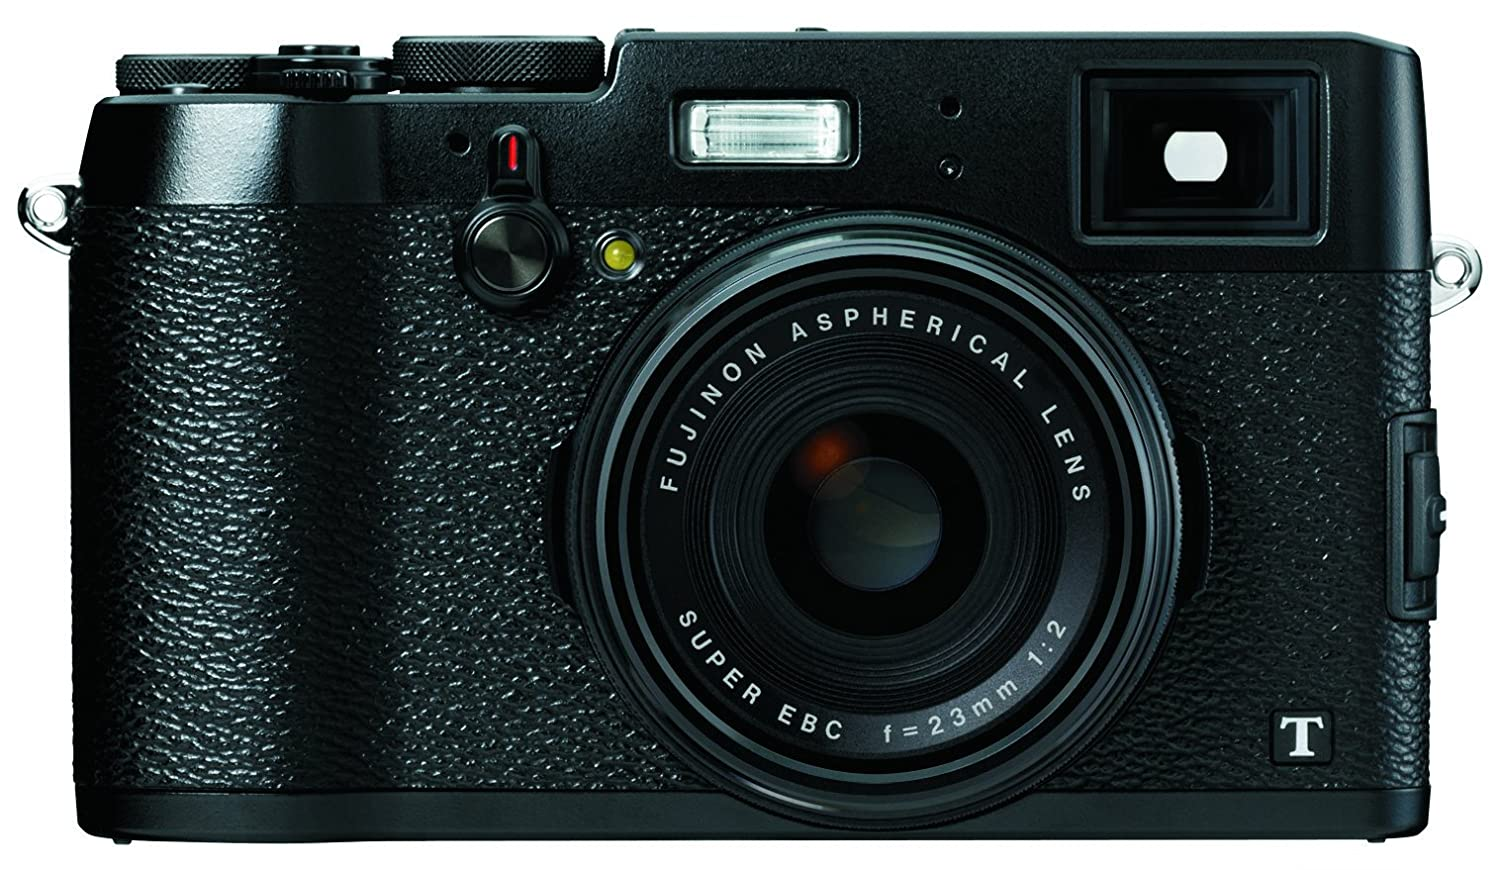 Amazon.com : Fujifilm X100T 16 MP Digital Camera (Black) : Camera & Photo